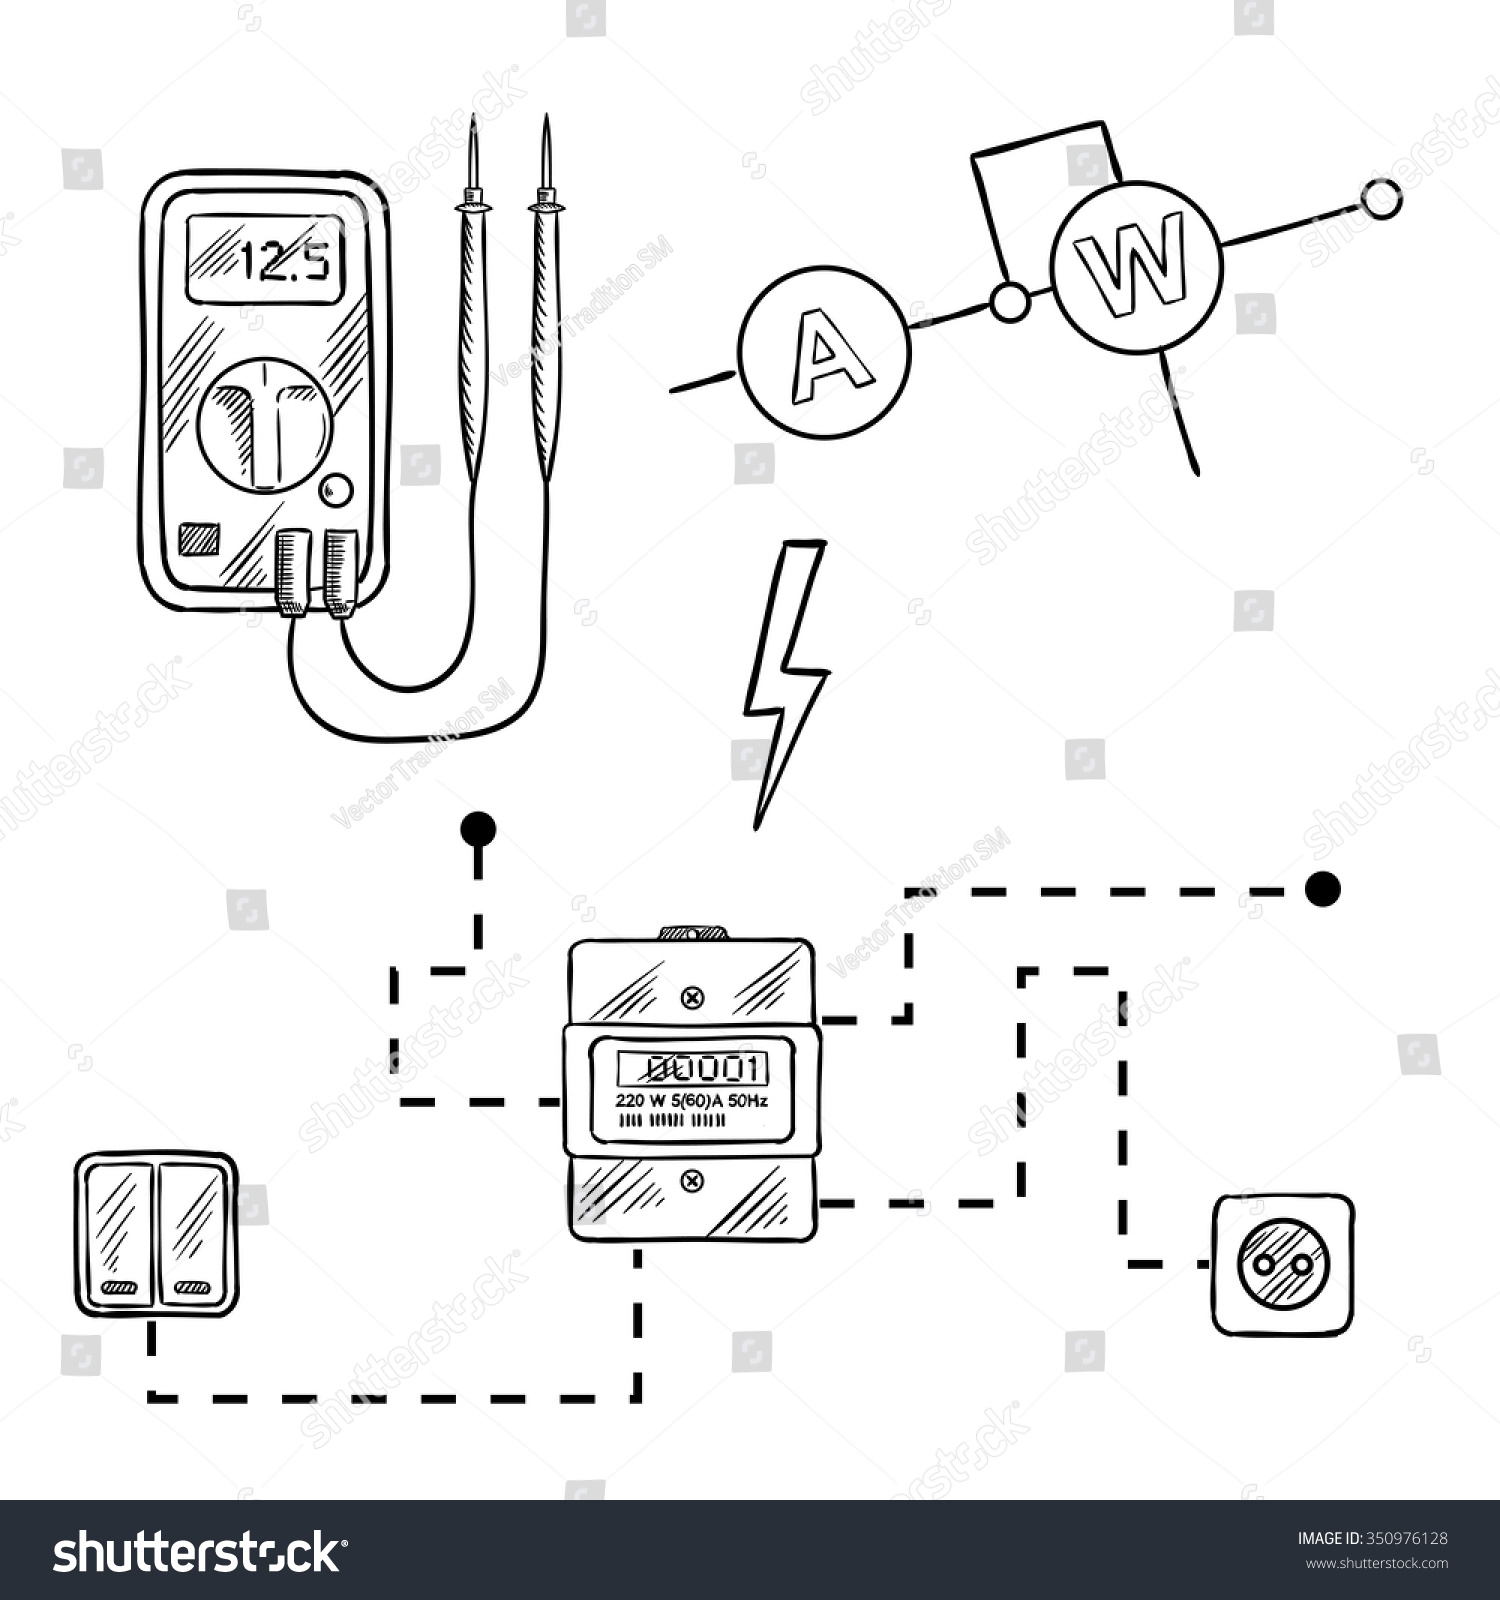 Digital Voltmeter Electricity Meter Socket Switches Stock Vector Basic Circuit Diagram Maker With And Electrical Sketch Icons